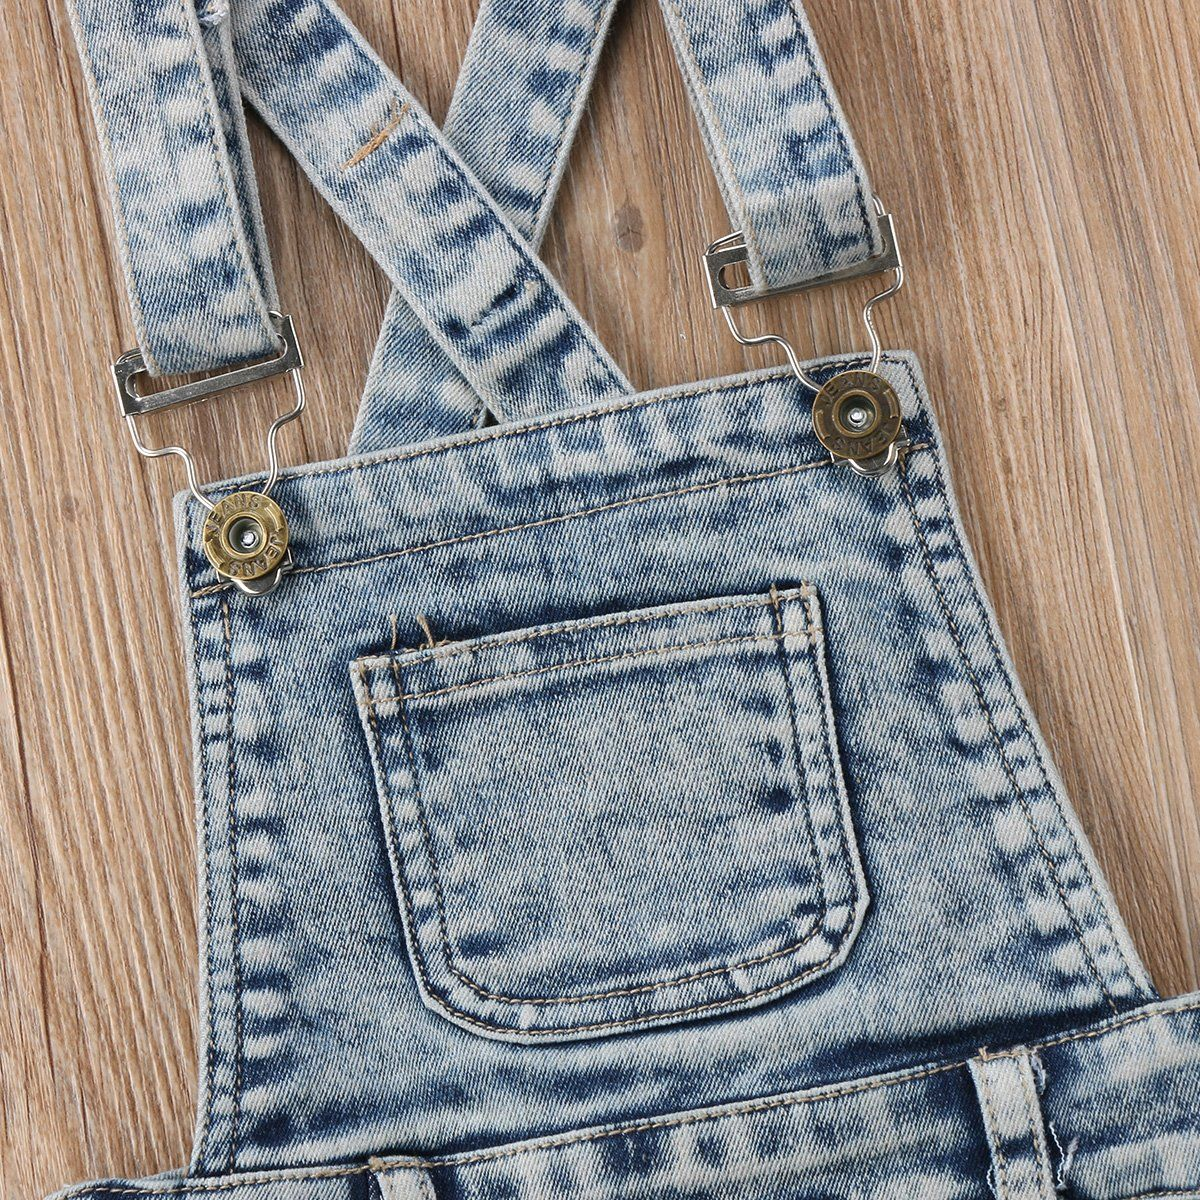 2a4285c6af47 Baby Little Girls Boys Kids Denim Short Overalls Denim Jumpsuit Boyfriend  Jeans Denim Romper Shortalls Denim